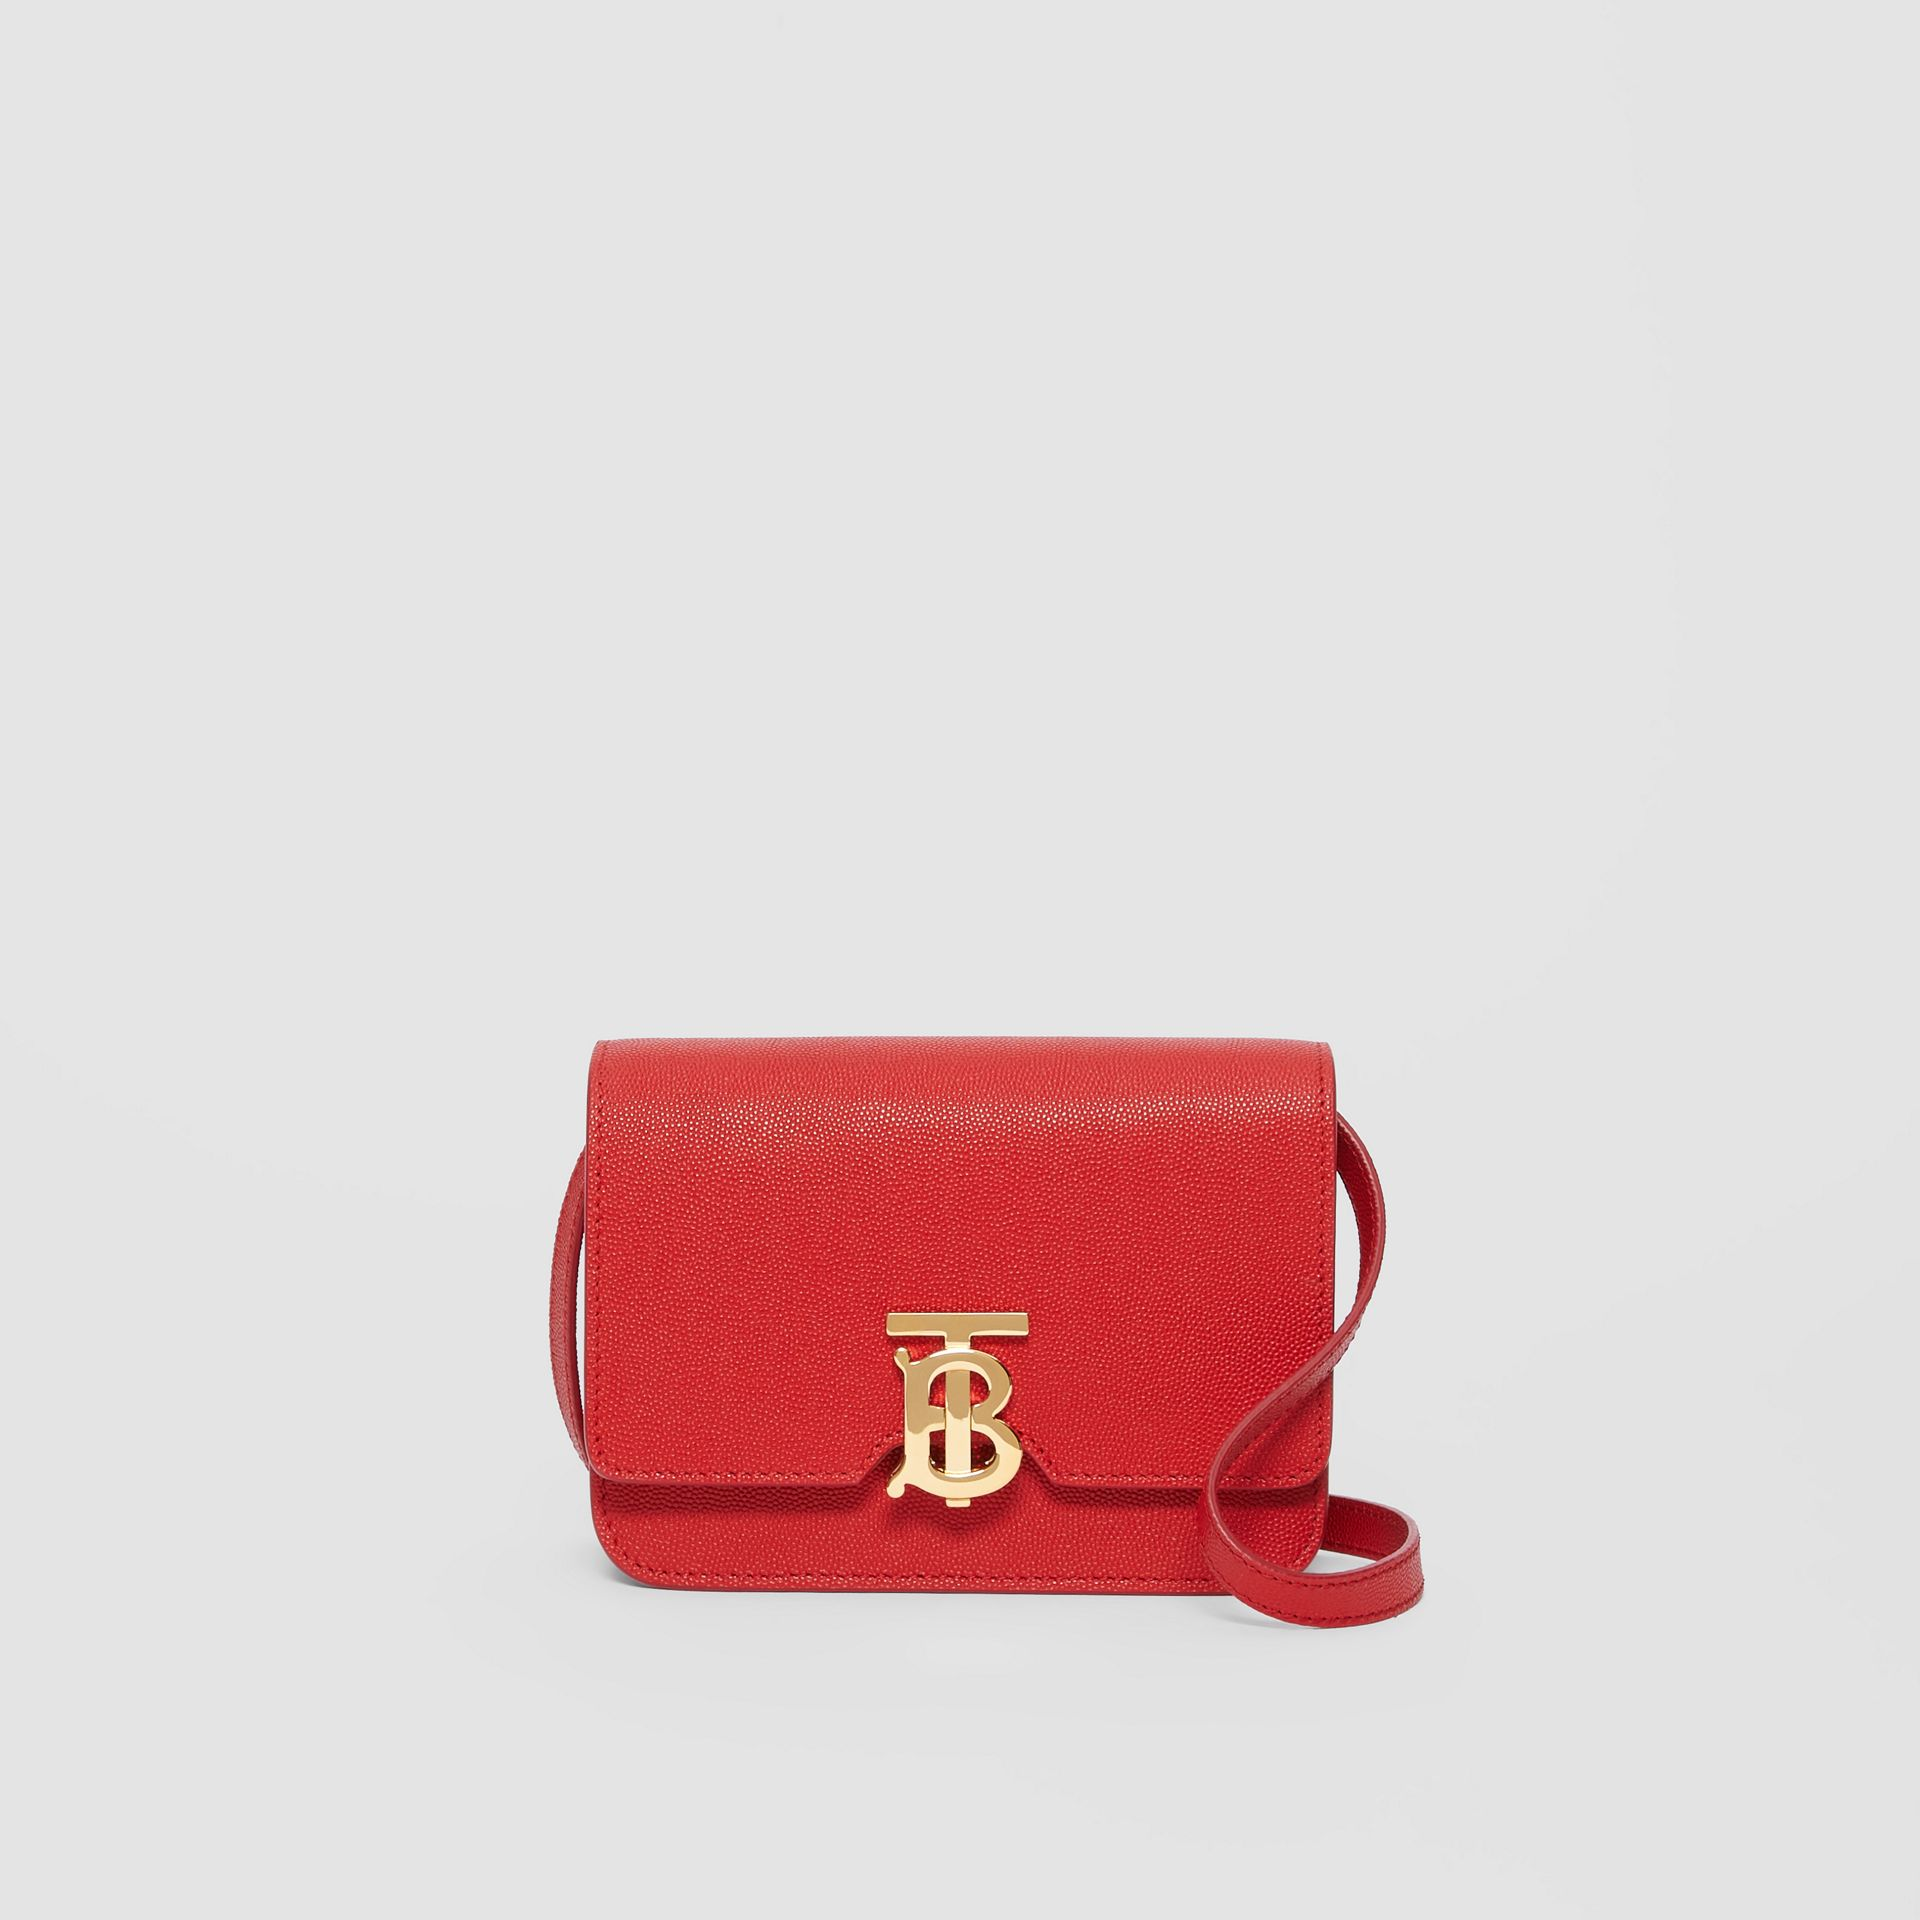 Mini Grainy Leather TB Bag in Bright Red - Women | Burberry - gallery image 0